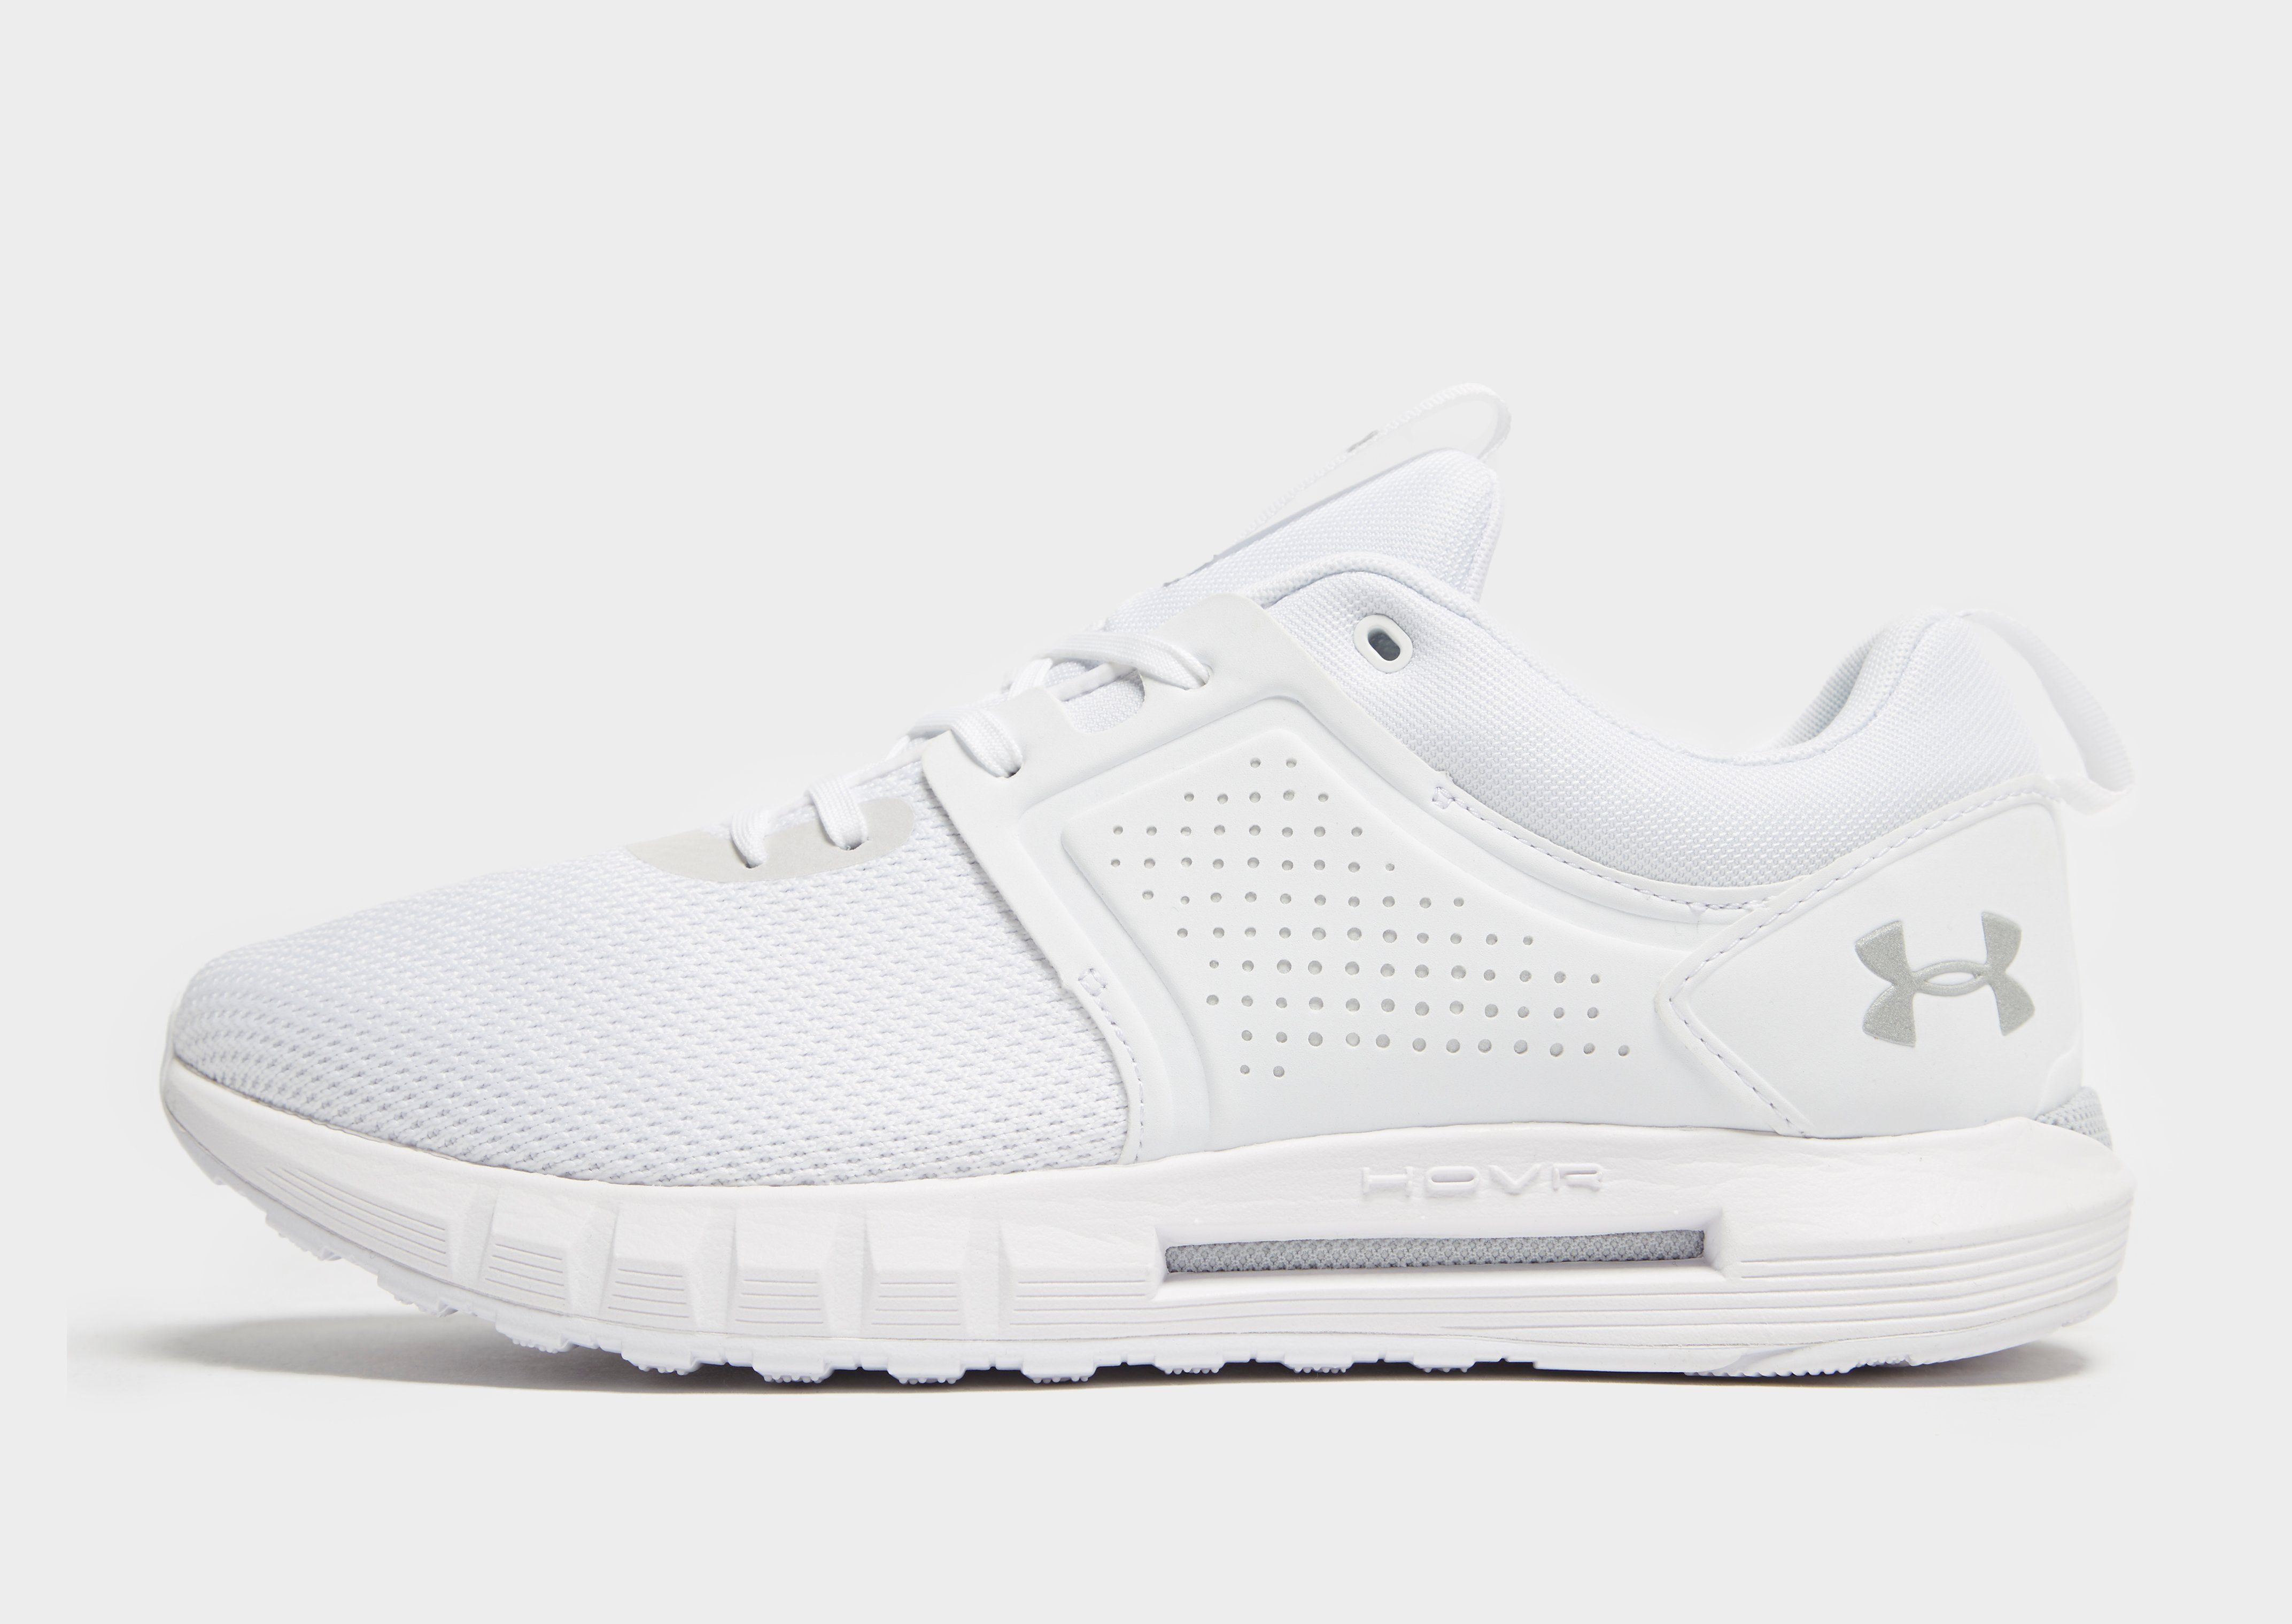 official photos 6f4c8 009ae Under Armour HOVR CTW | JD Sports